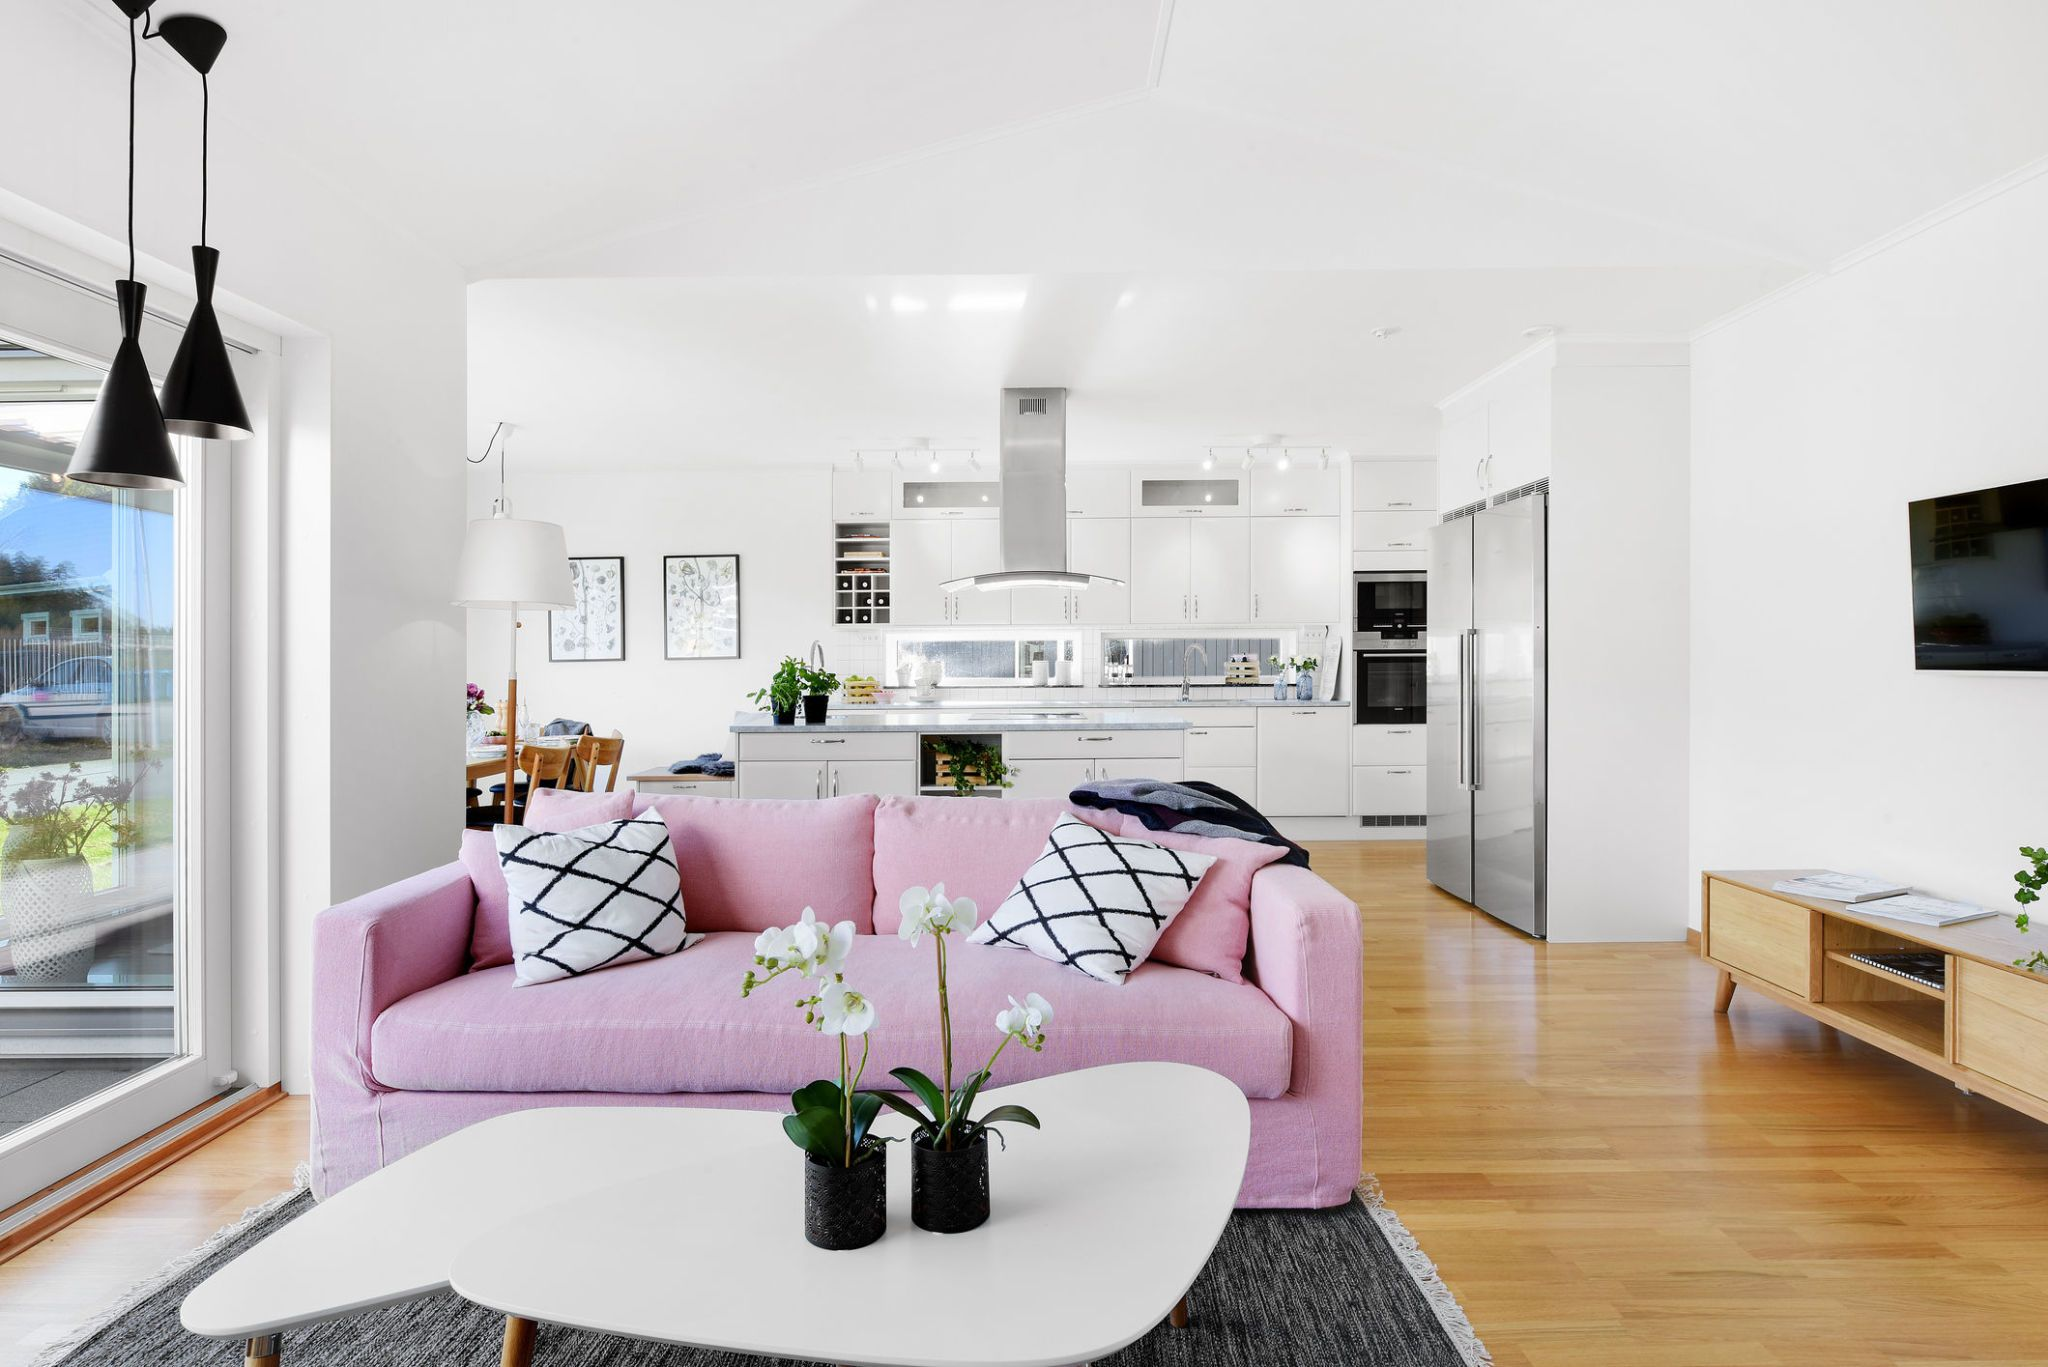 How to plan a room layout and make the best use of space